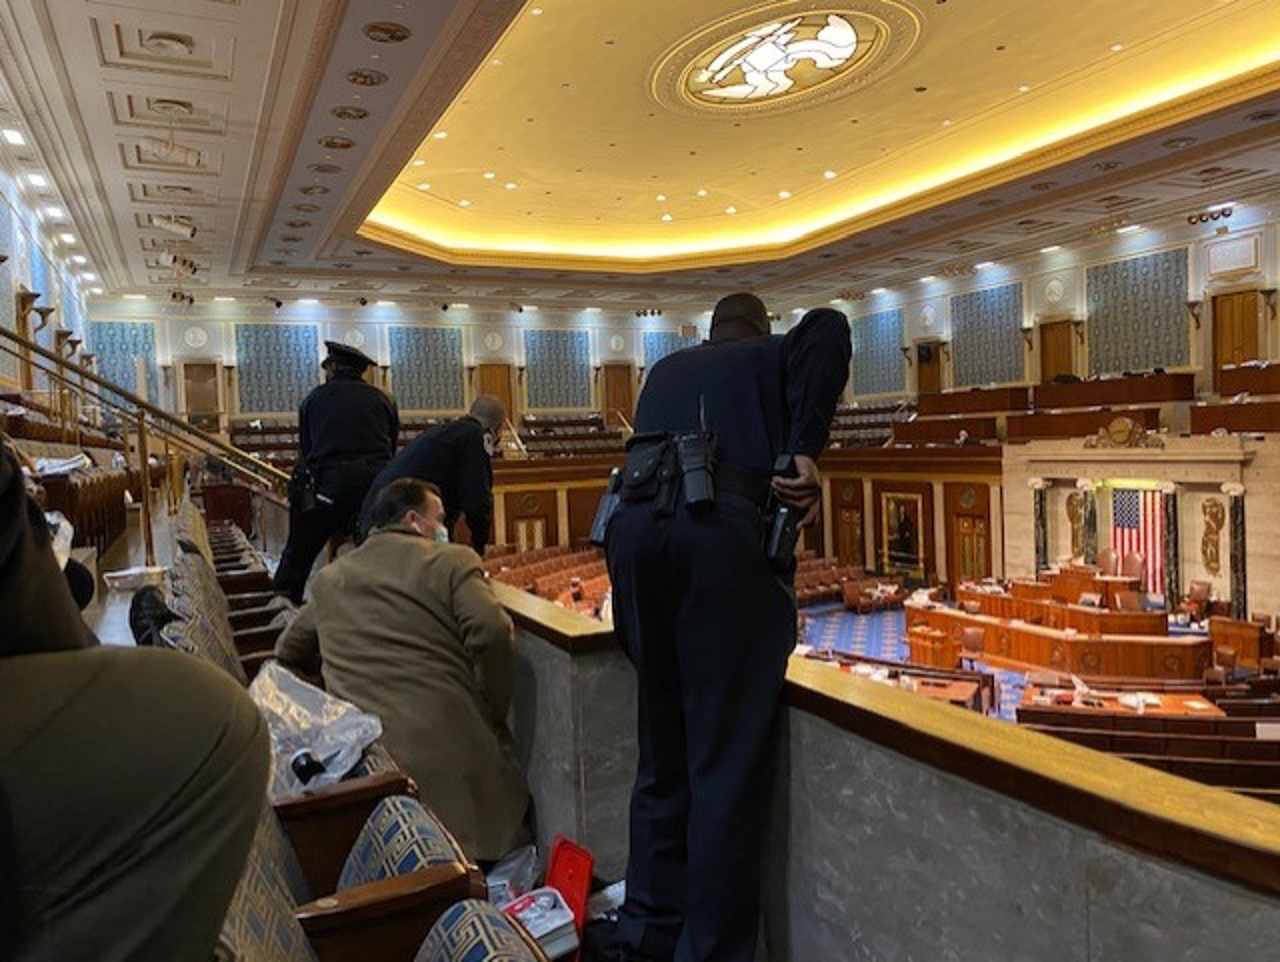 Jim Costa photo, Preparing for evacuation from House Chambers